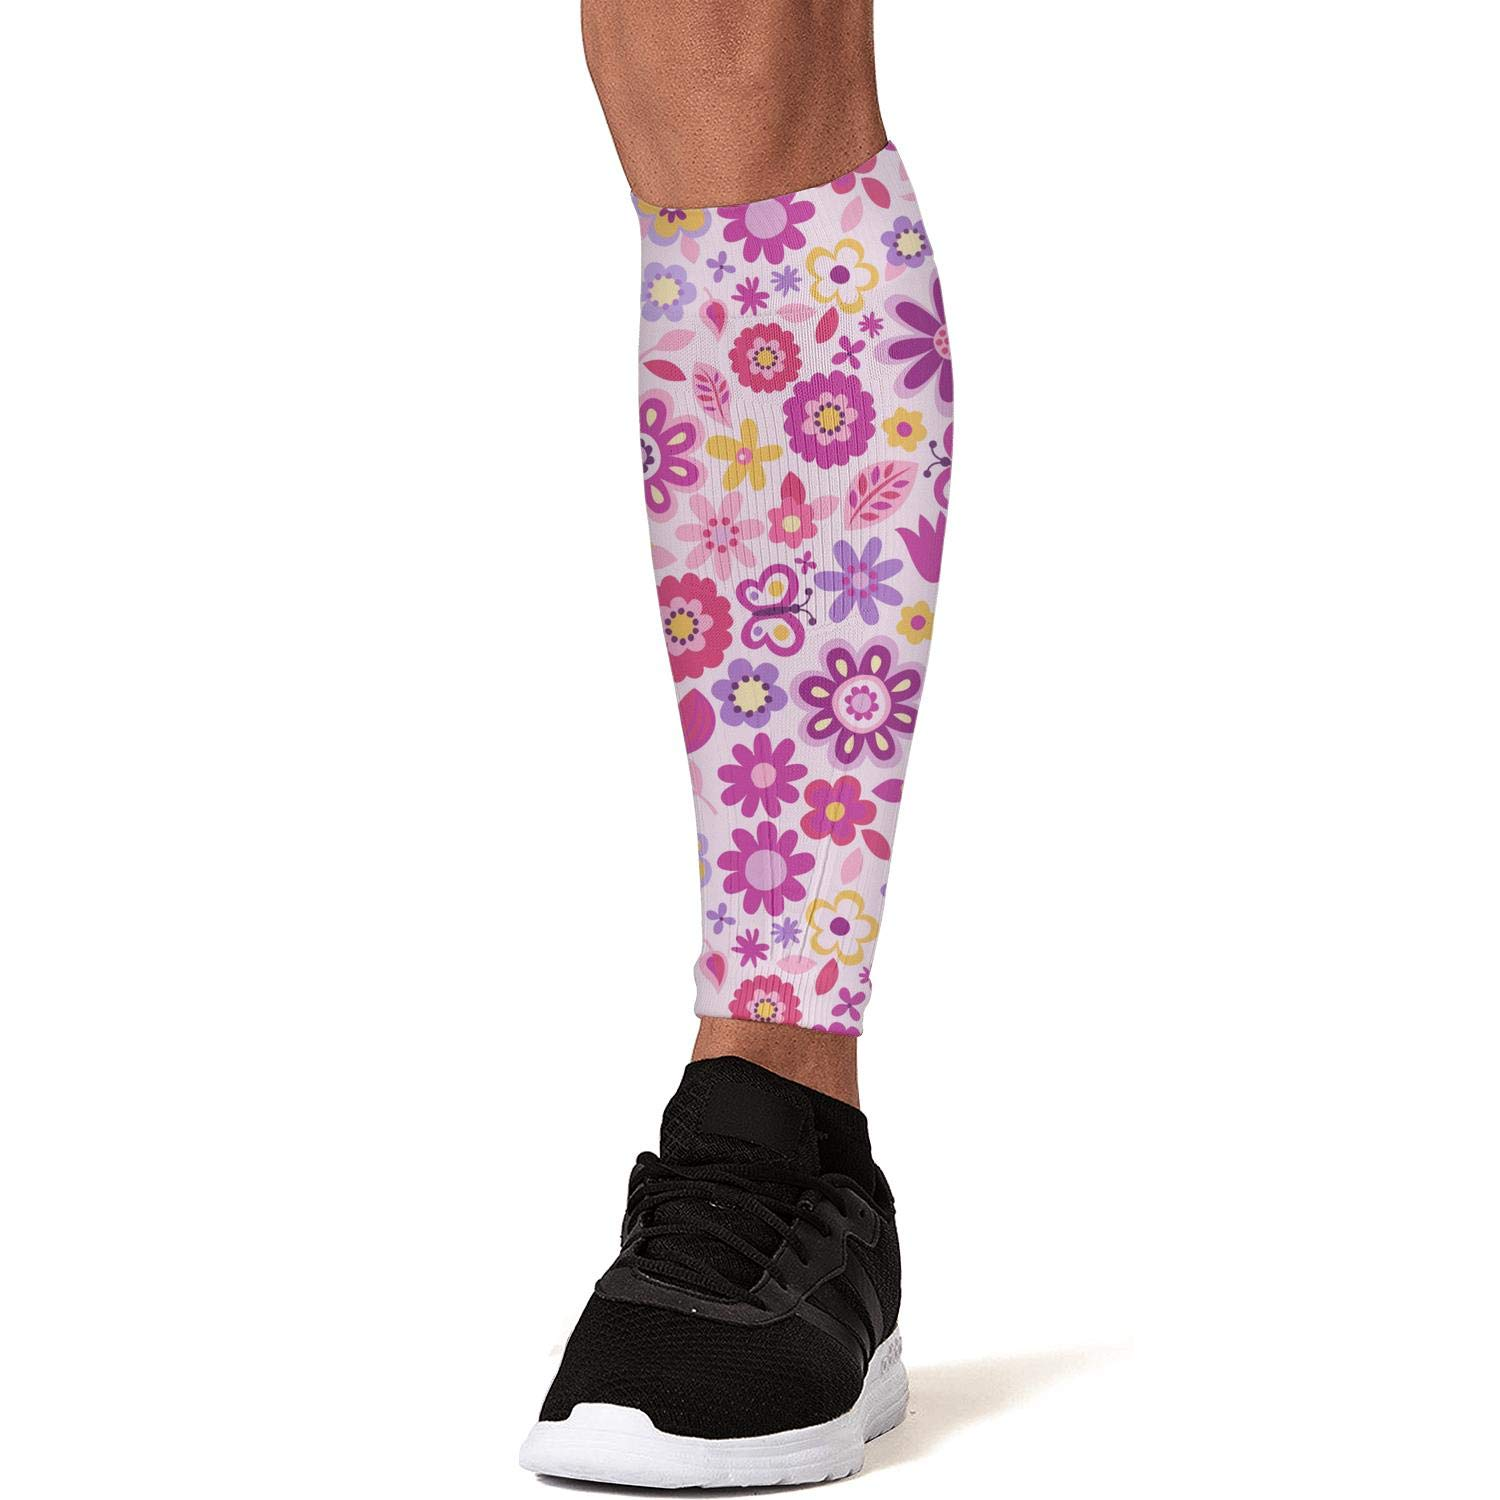 Pink Daisy Seeds Calf Compression Sleeve for Men//Women Shin Splint Support Leg Compression Socks for Running Cycling Travel Nurses Pain Relief Calves